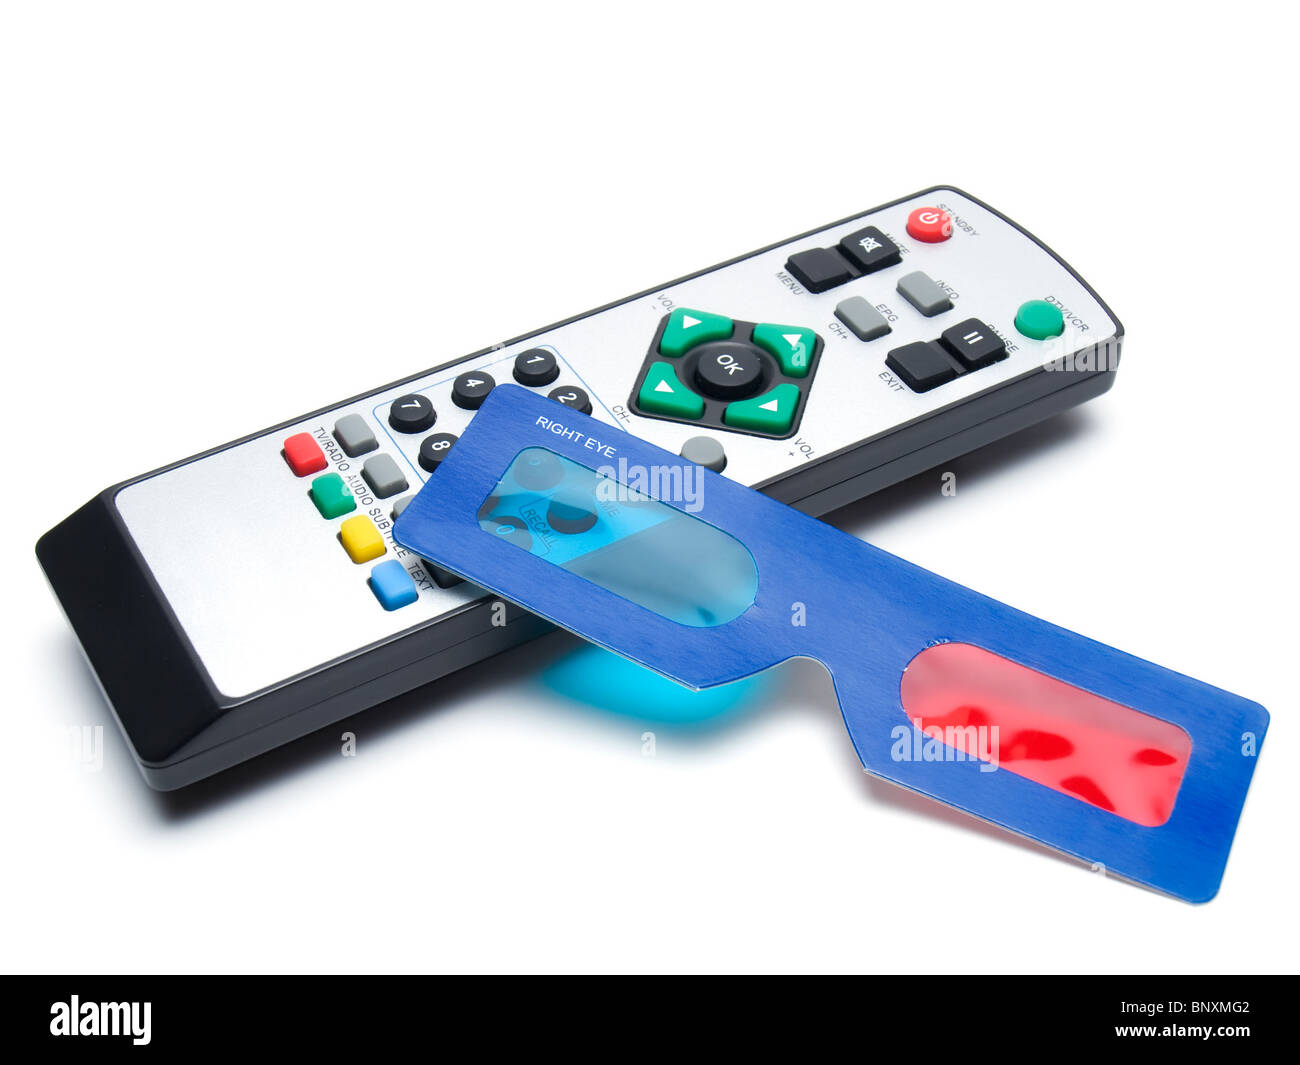 Main accessories for watching 3D multimedia or television. - Stock Image